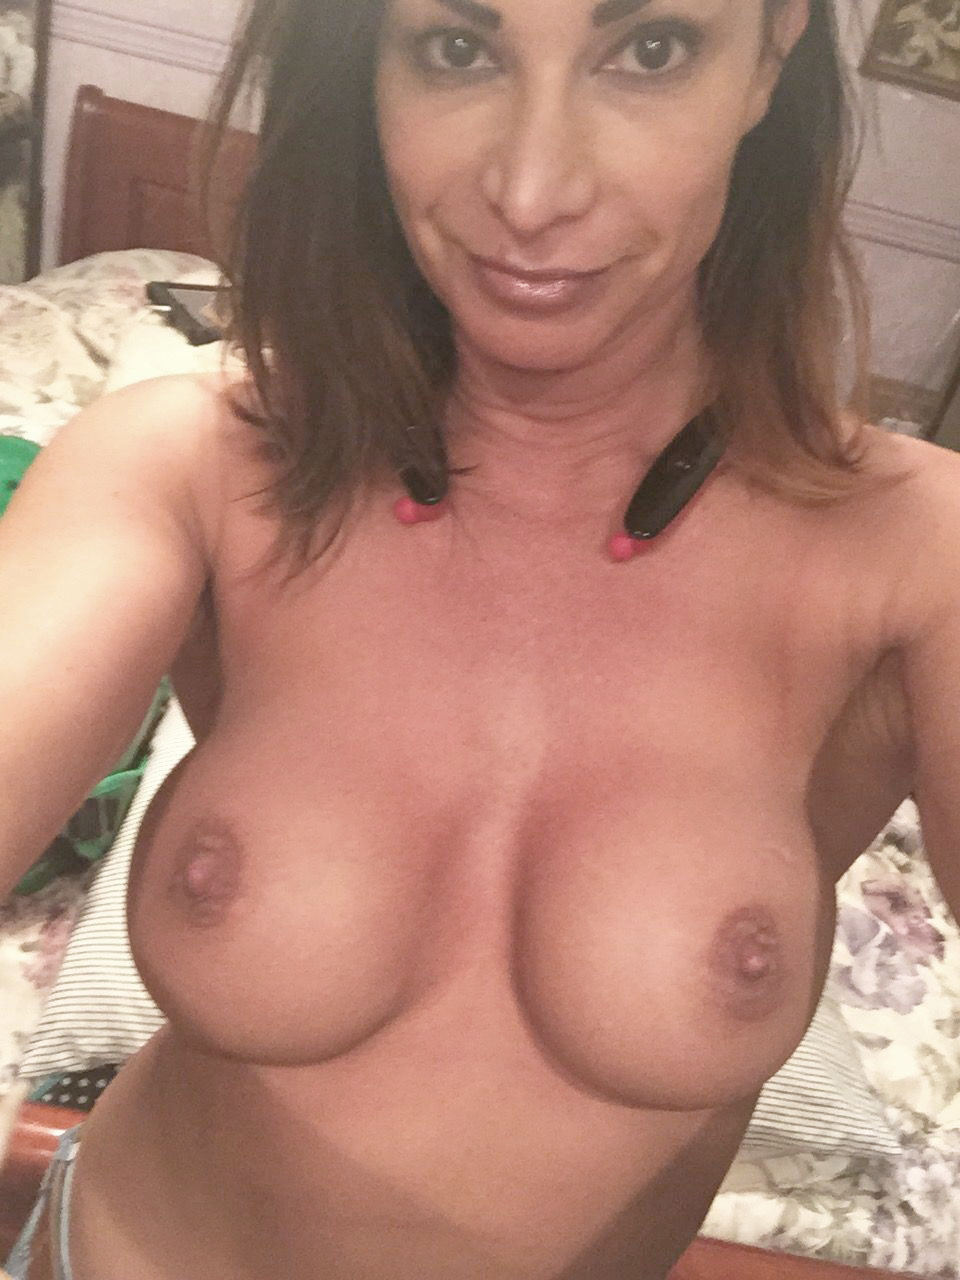 Mature nude women images